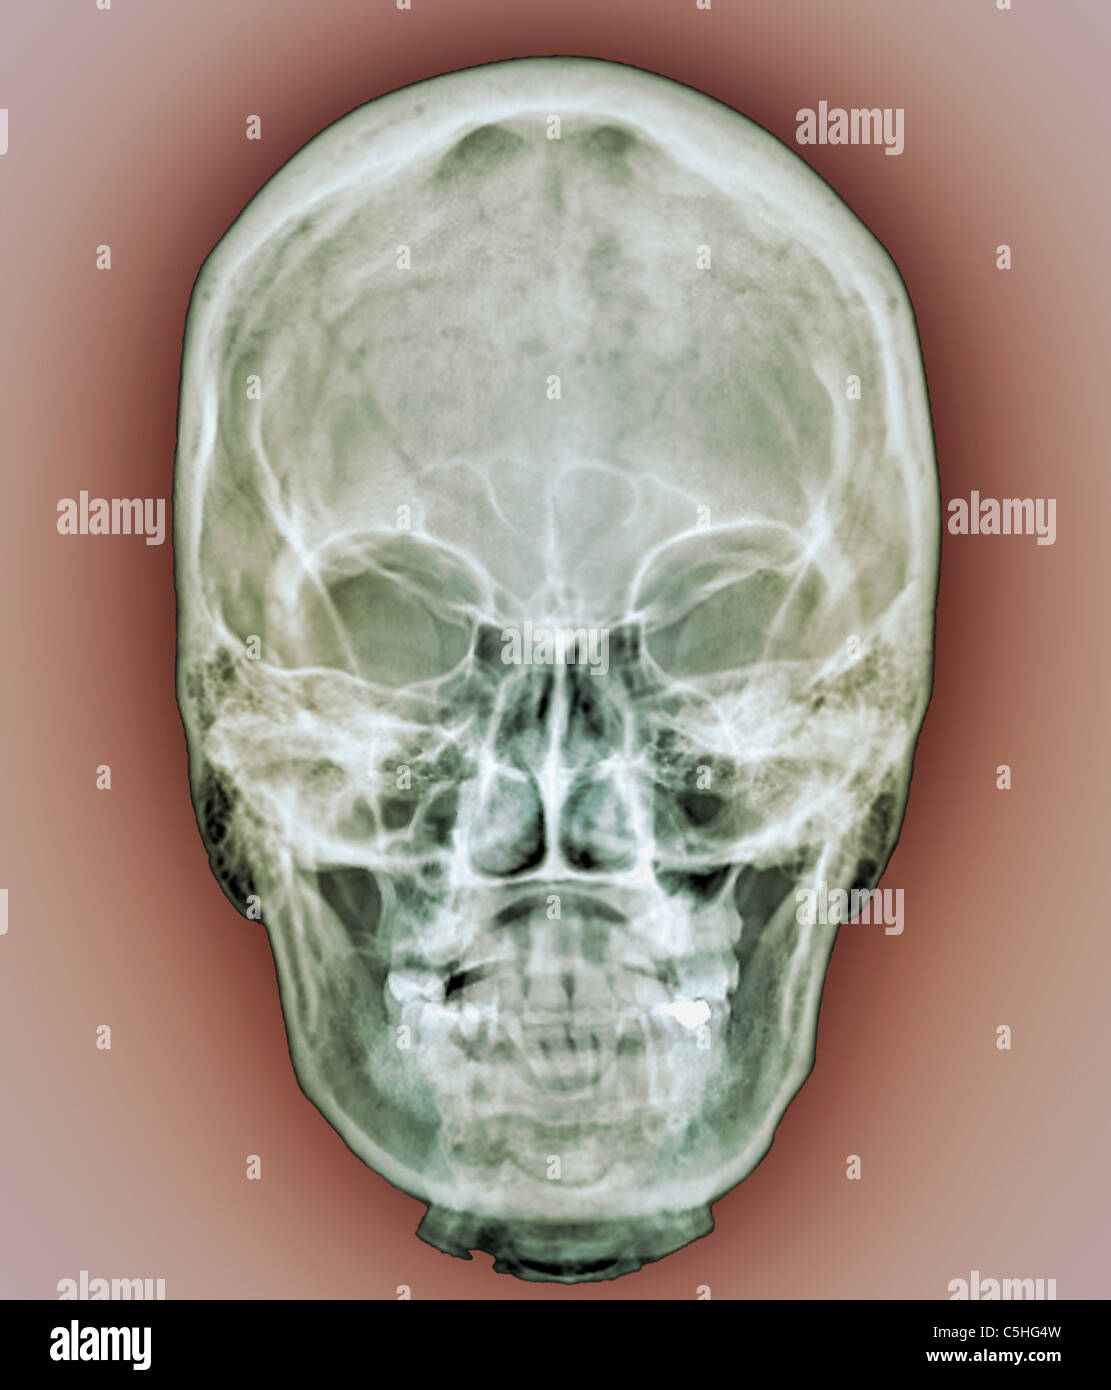 Normal Skull X Ray Stock Photos & Normal Skull X Ray Stock Images ...